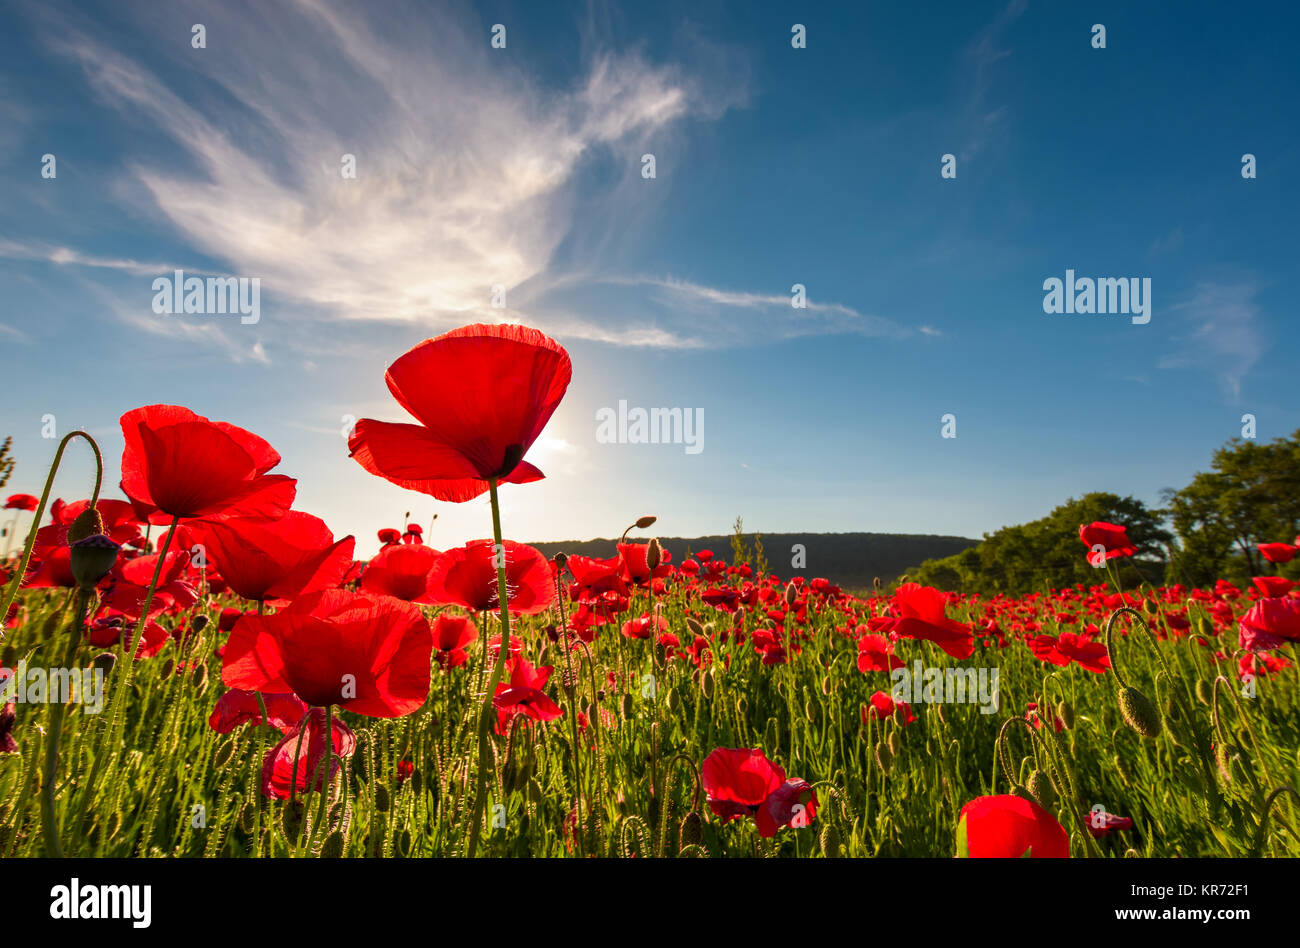 Sunburst Field Stock Photos & Sunburst Field Stock Images - Alamy